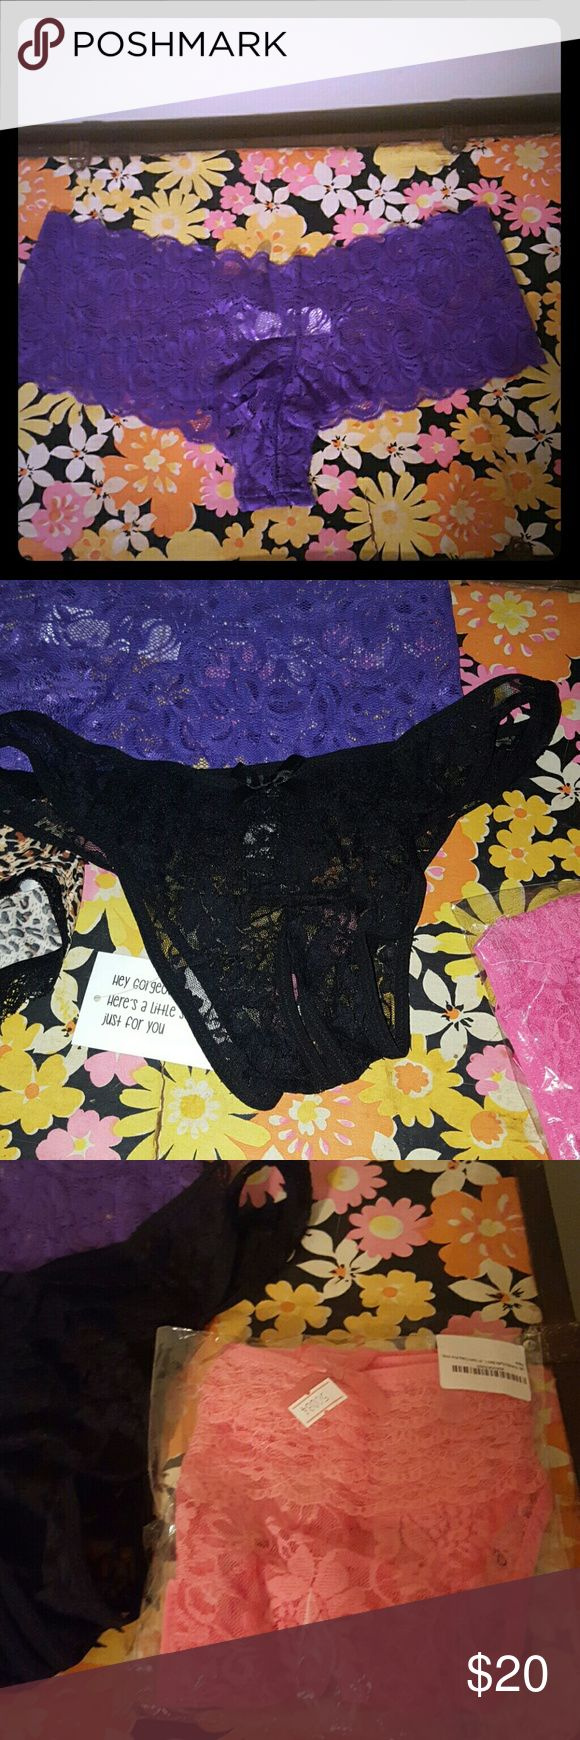 Sexy underwear 4 pack, never worn These say 3x but they're more like 1x. I never even tried these on I knew they wouldn't fit (they must be Asian 3x). One pair purple lace boyshort. Two crotchless lace ruffle booty, one black one pink. One cheetah super sexy open booty panty;) my loss is your gain since I was too lazy to return! Intimates & Sleepwear Panties